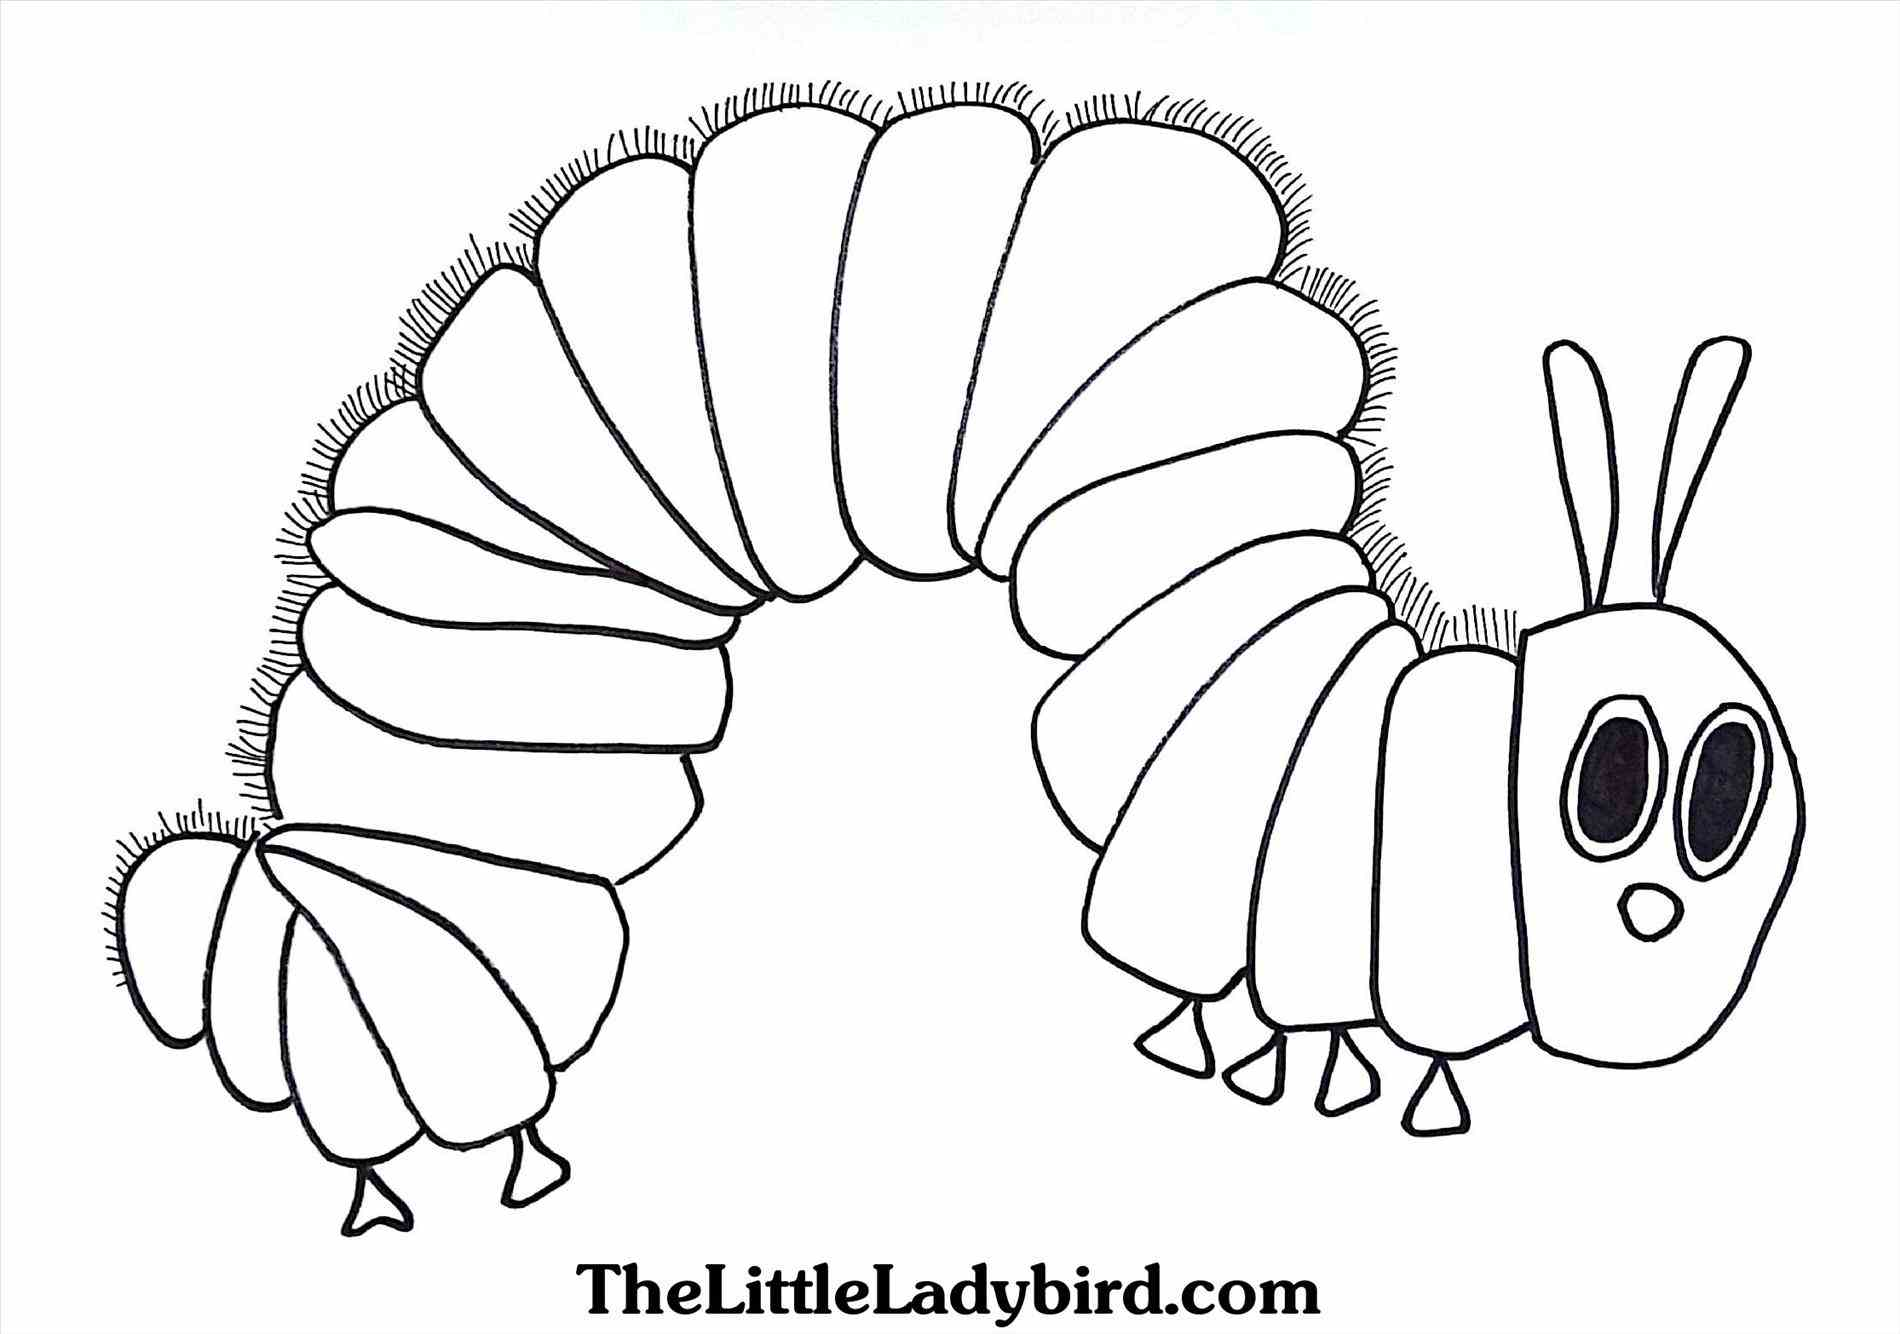 Printable Caterpillar Coloring Pages at GetDrawings.com | Free for ...